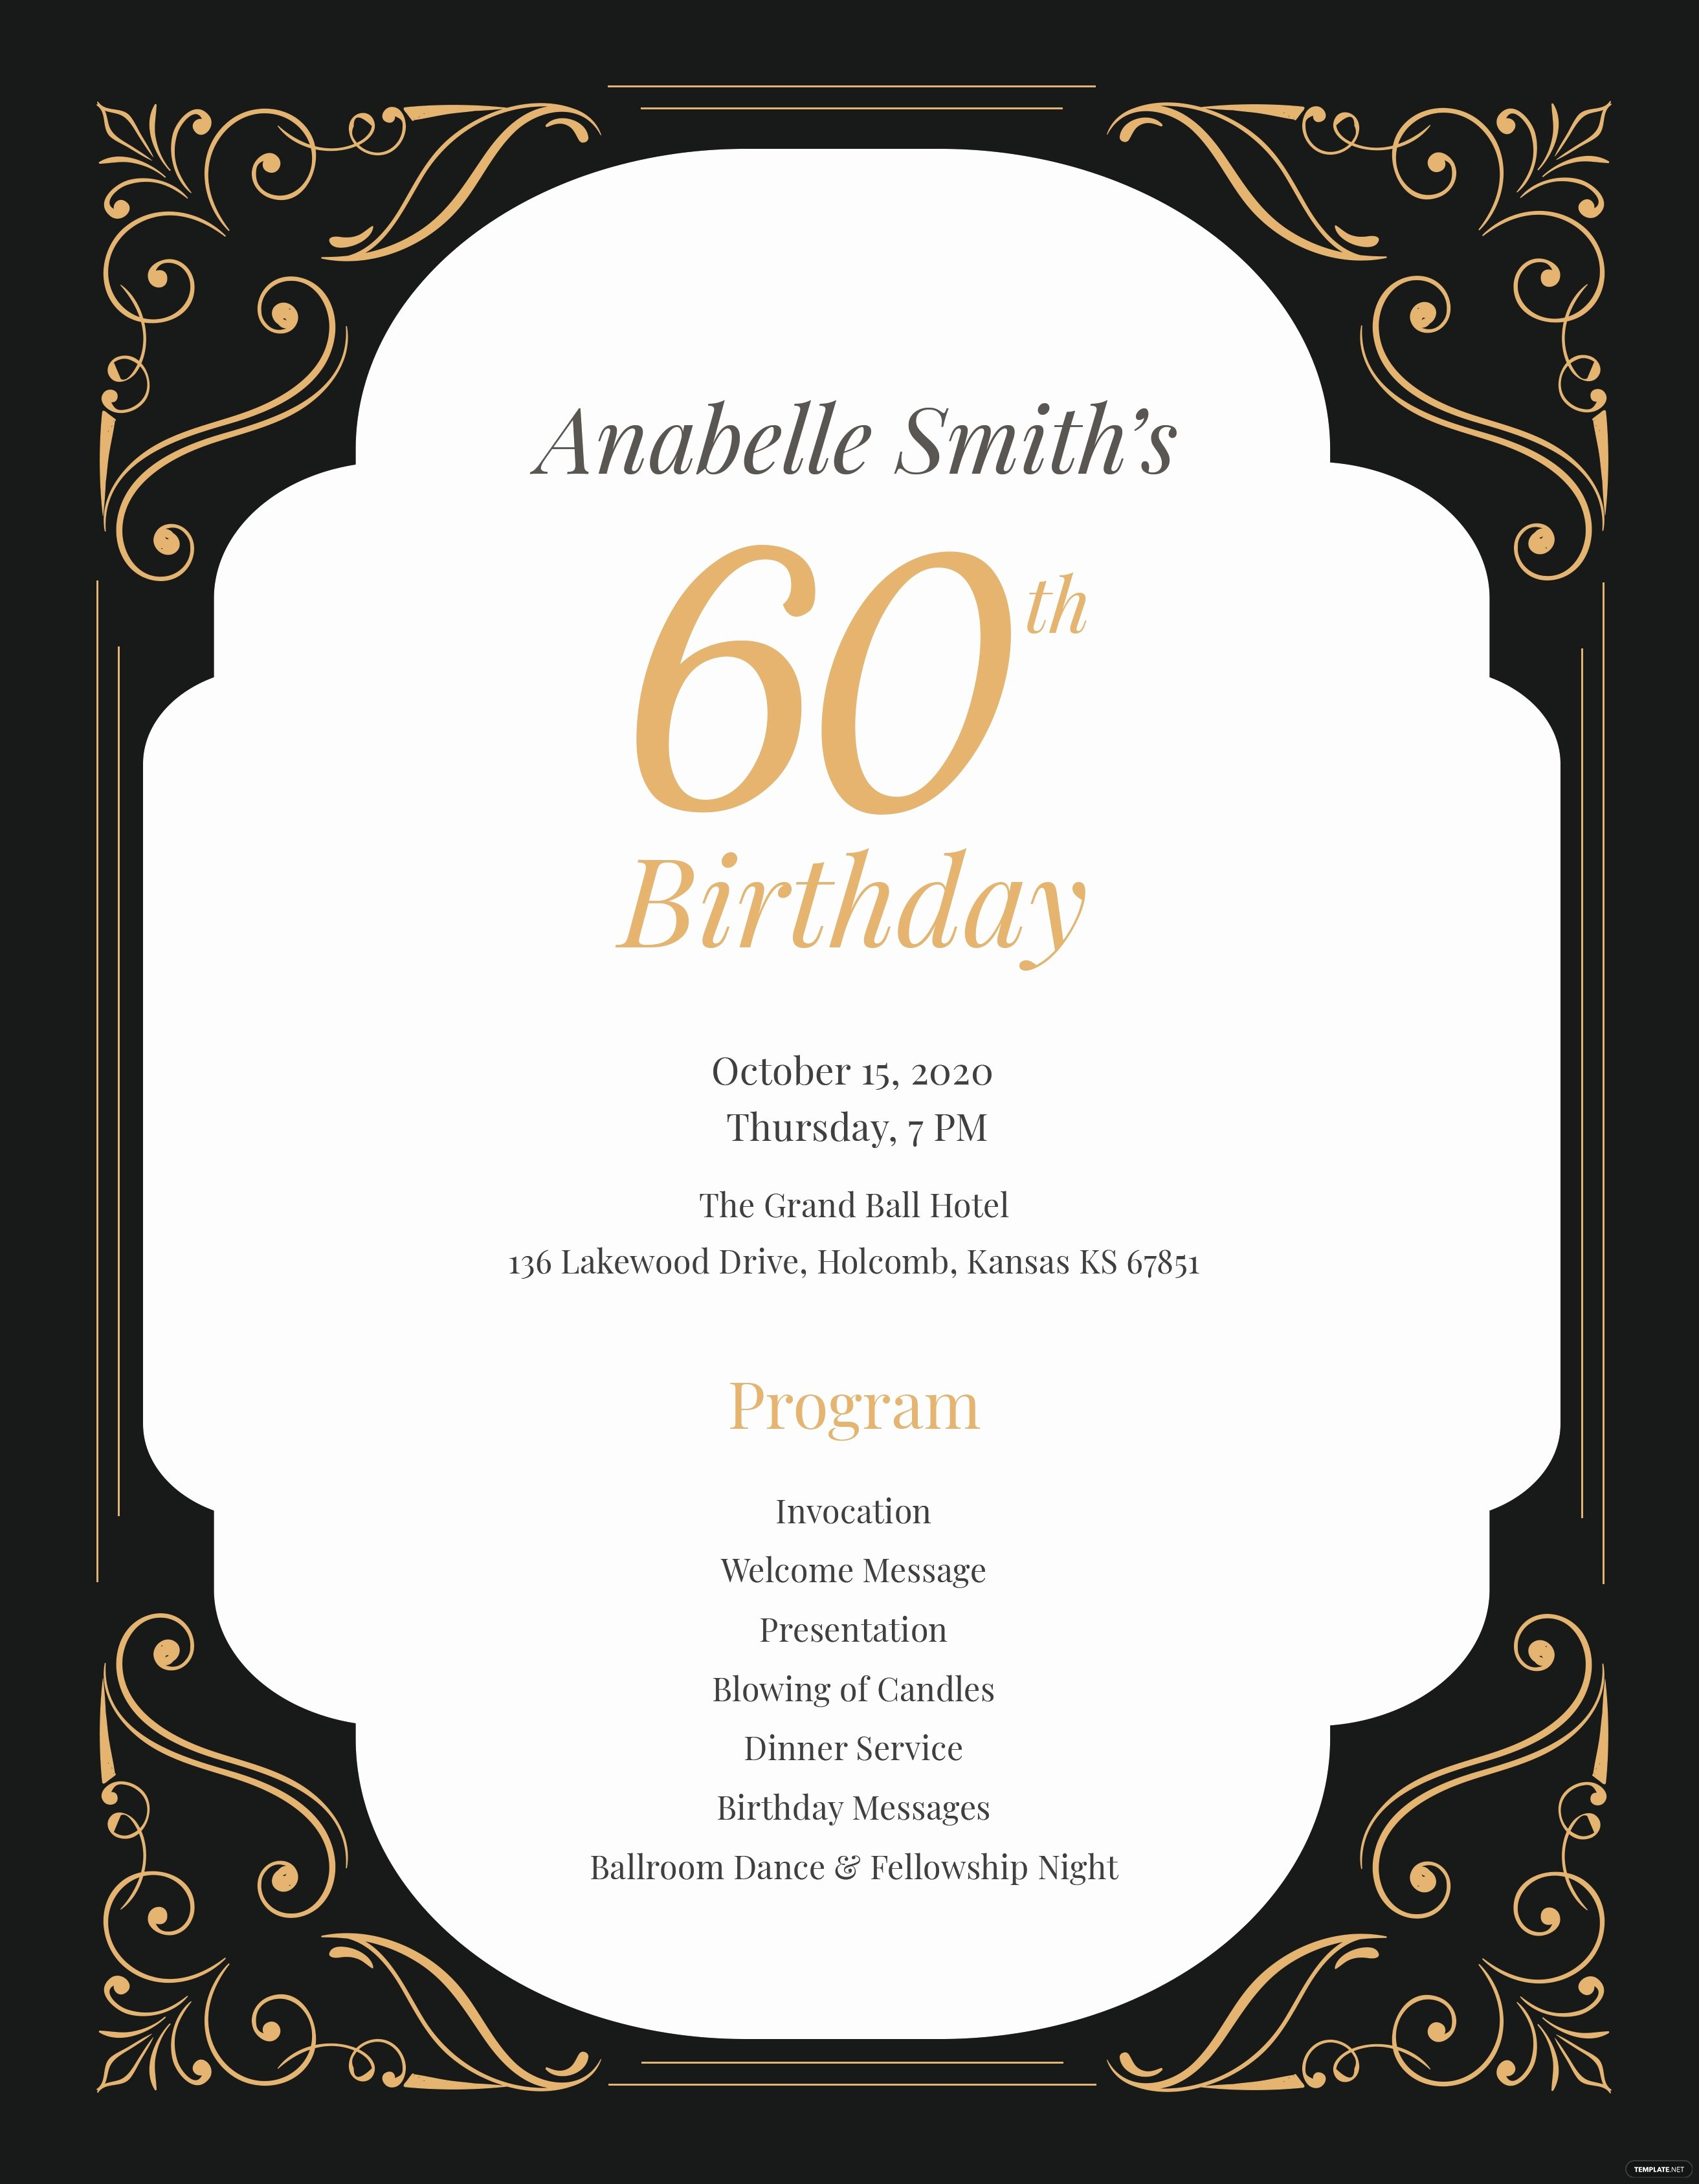 Birthday Party Program Template Luxury 60th Birthday Program Template In Adobe Shop Illustrator